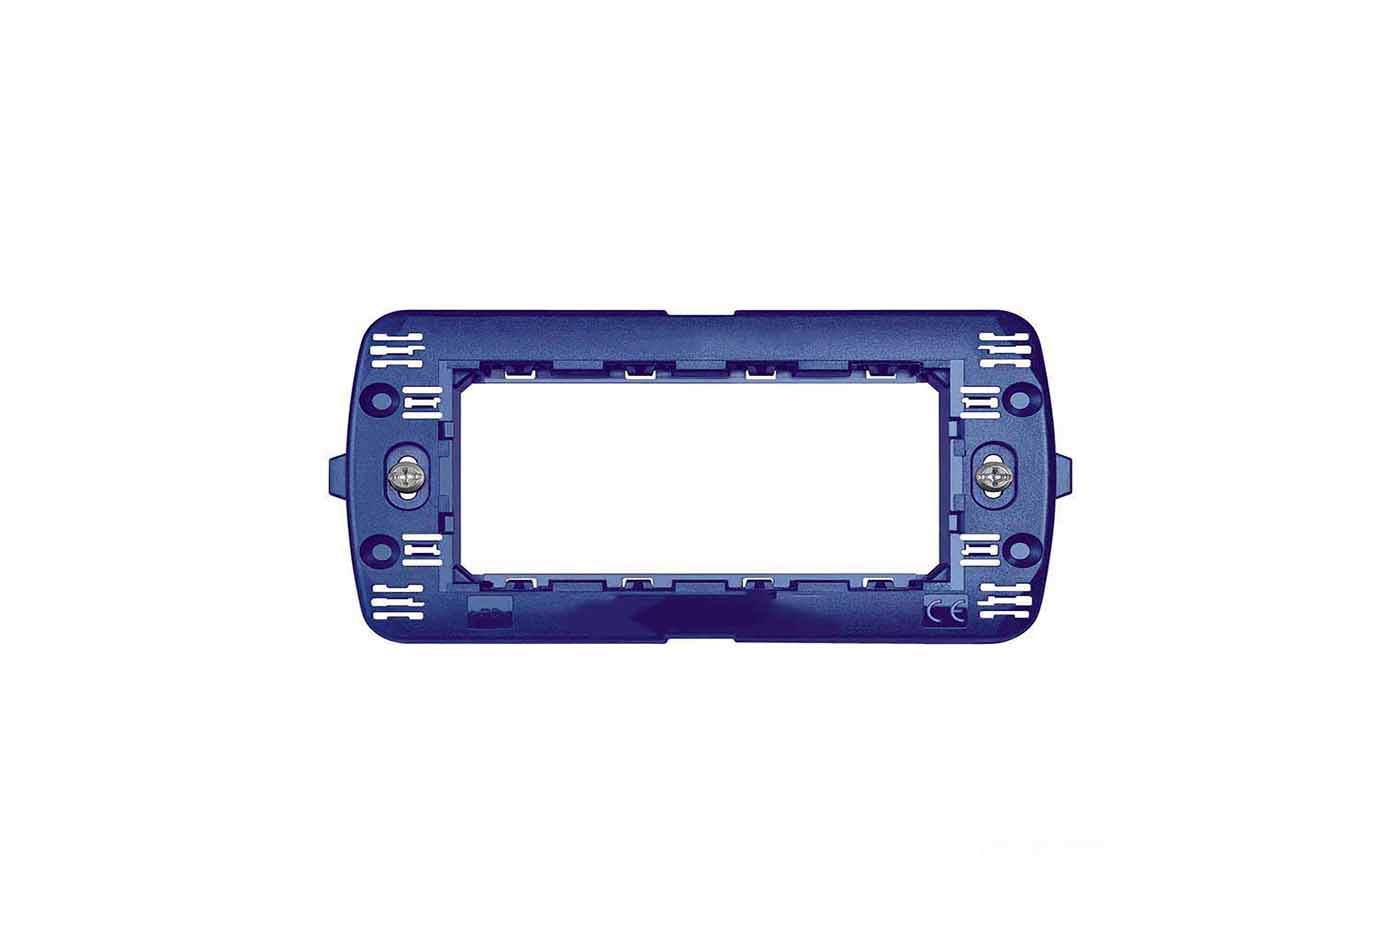 SUPPORTO PLACCA INTERRUTTORI INTERRUTTORE MURO BLU 4 POSTI COMPATIBILE LIVING